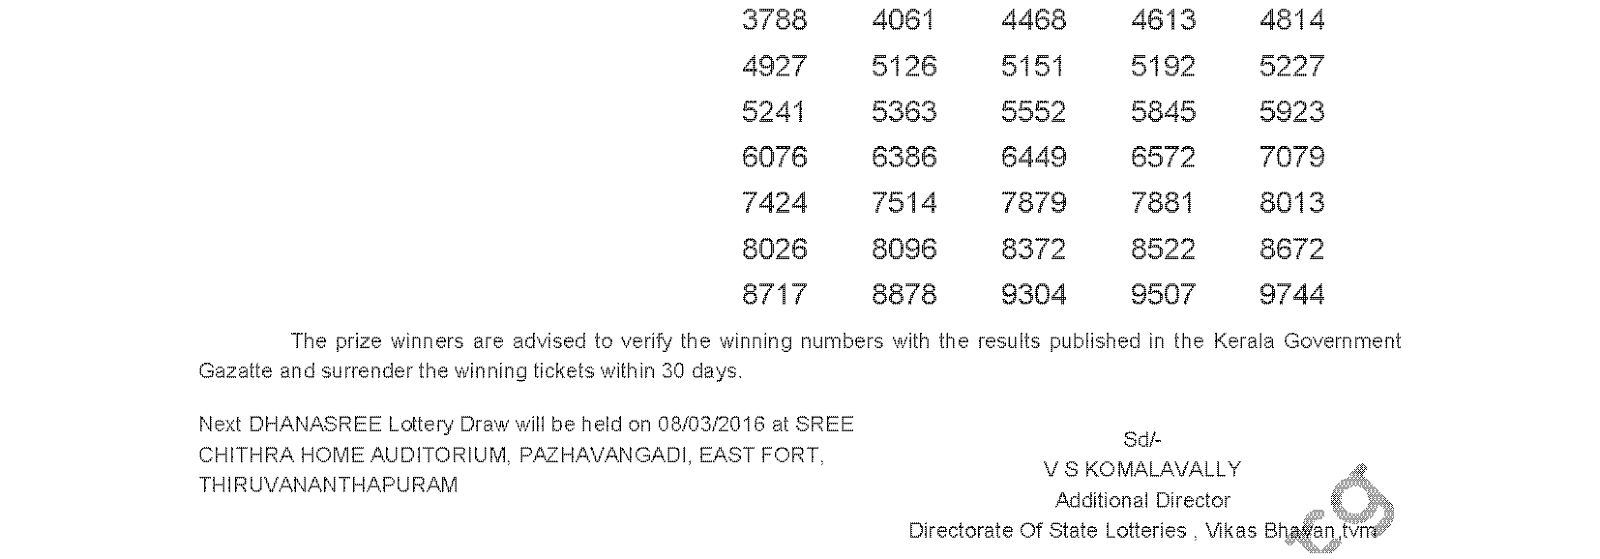 DHANASREE Lottery DS 226 Result 01-03-2016